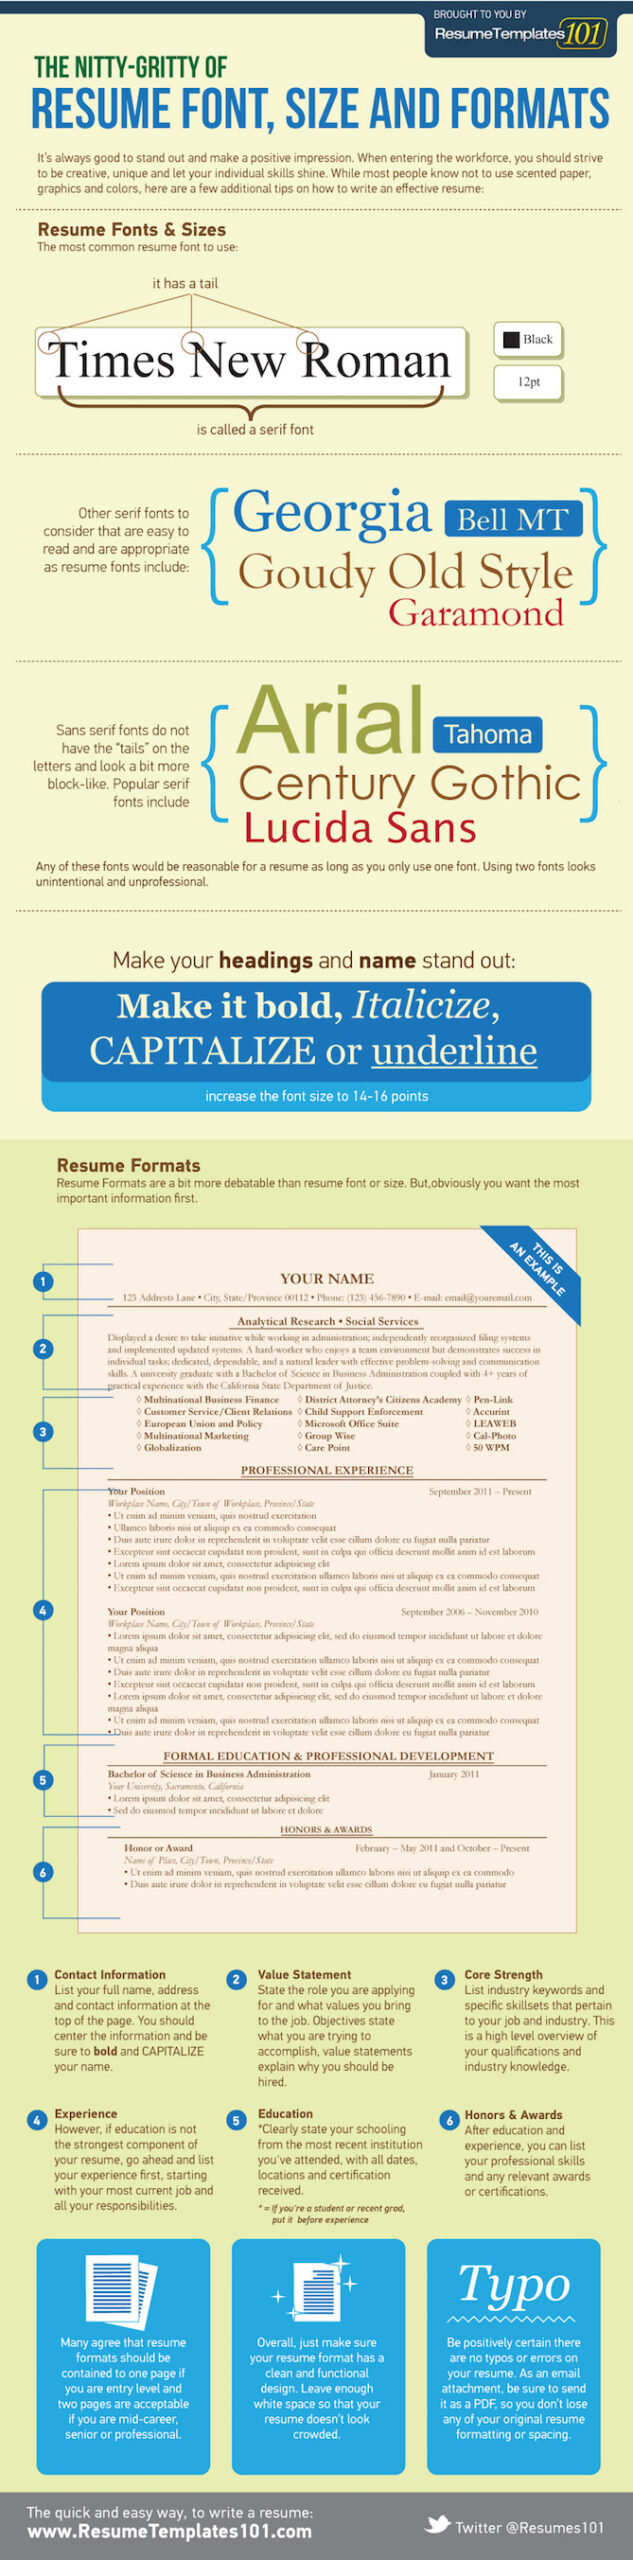 resume format tips you need to know in sample formats included guidelines infographic Resume Resume Format Guidelines